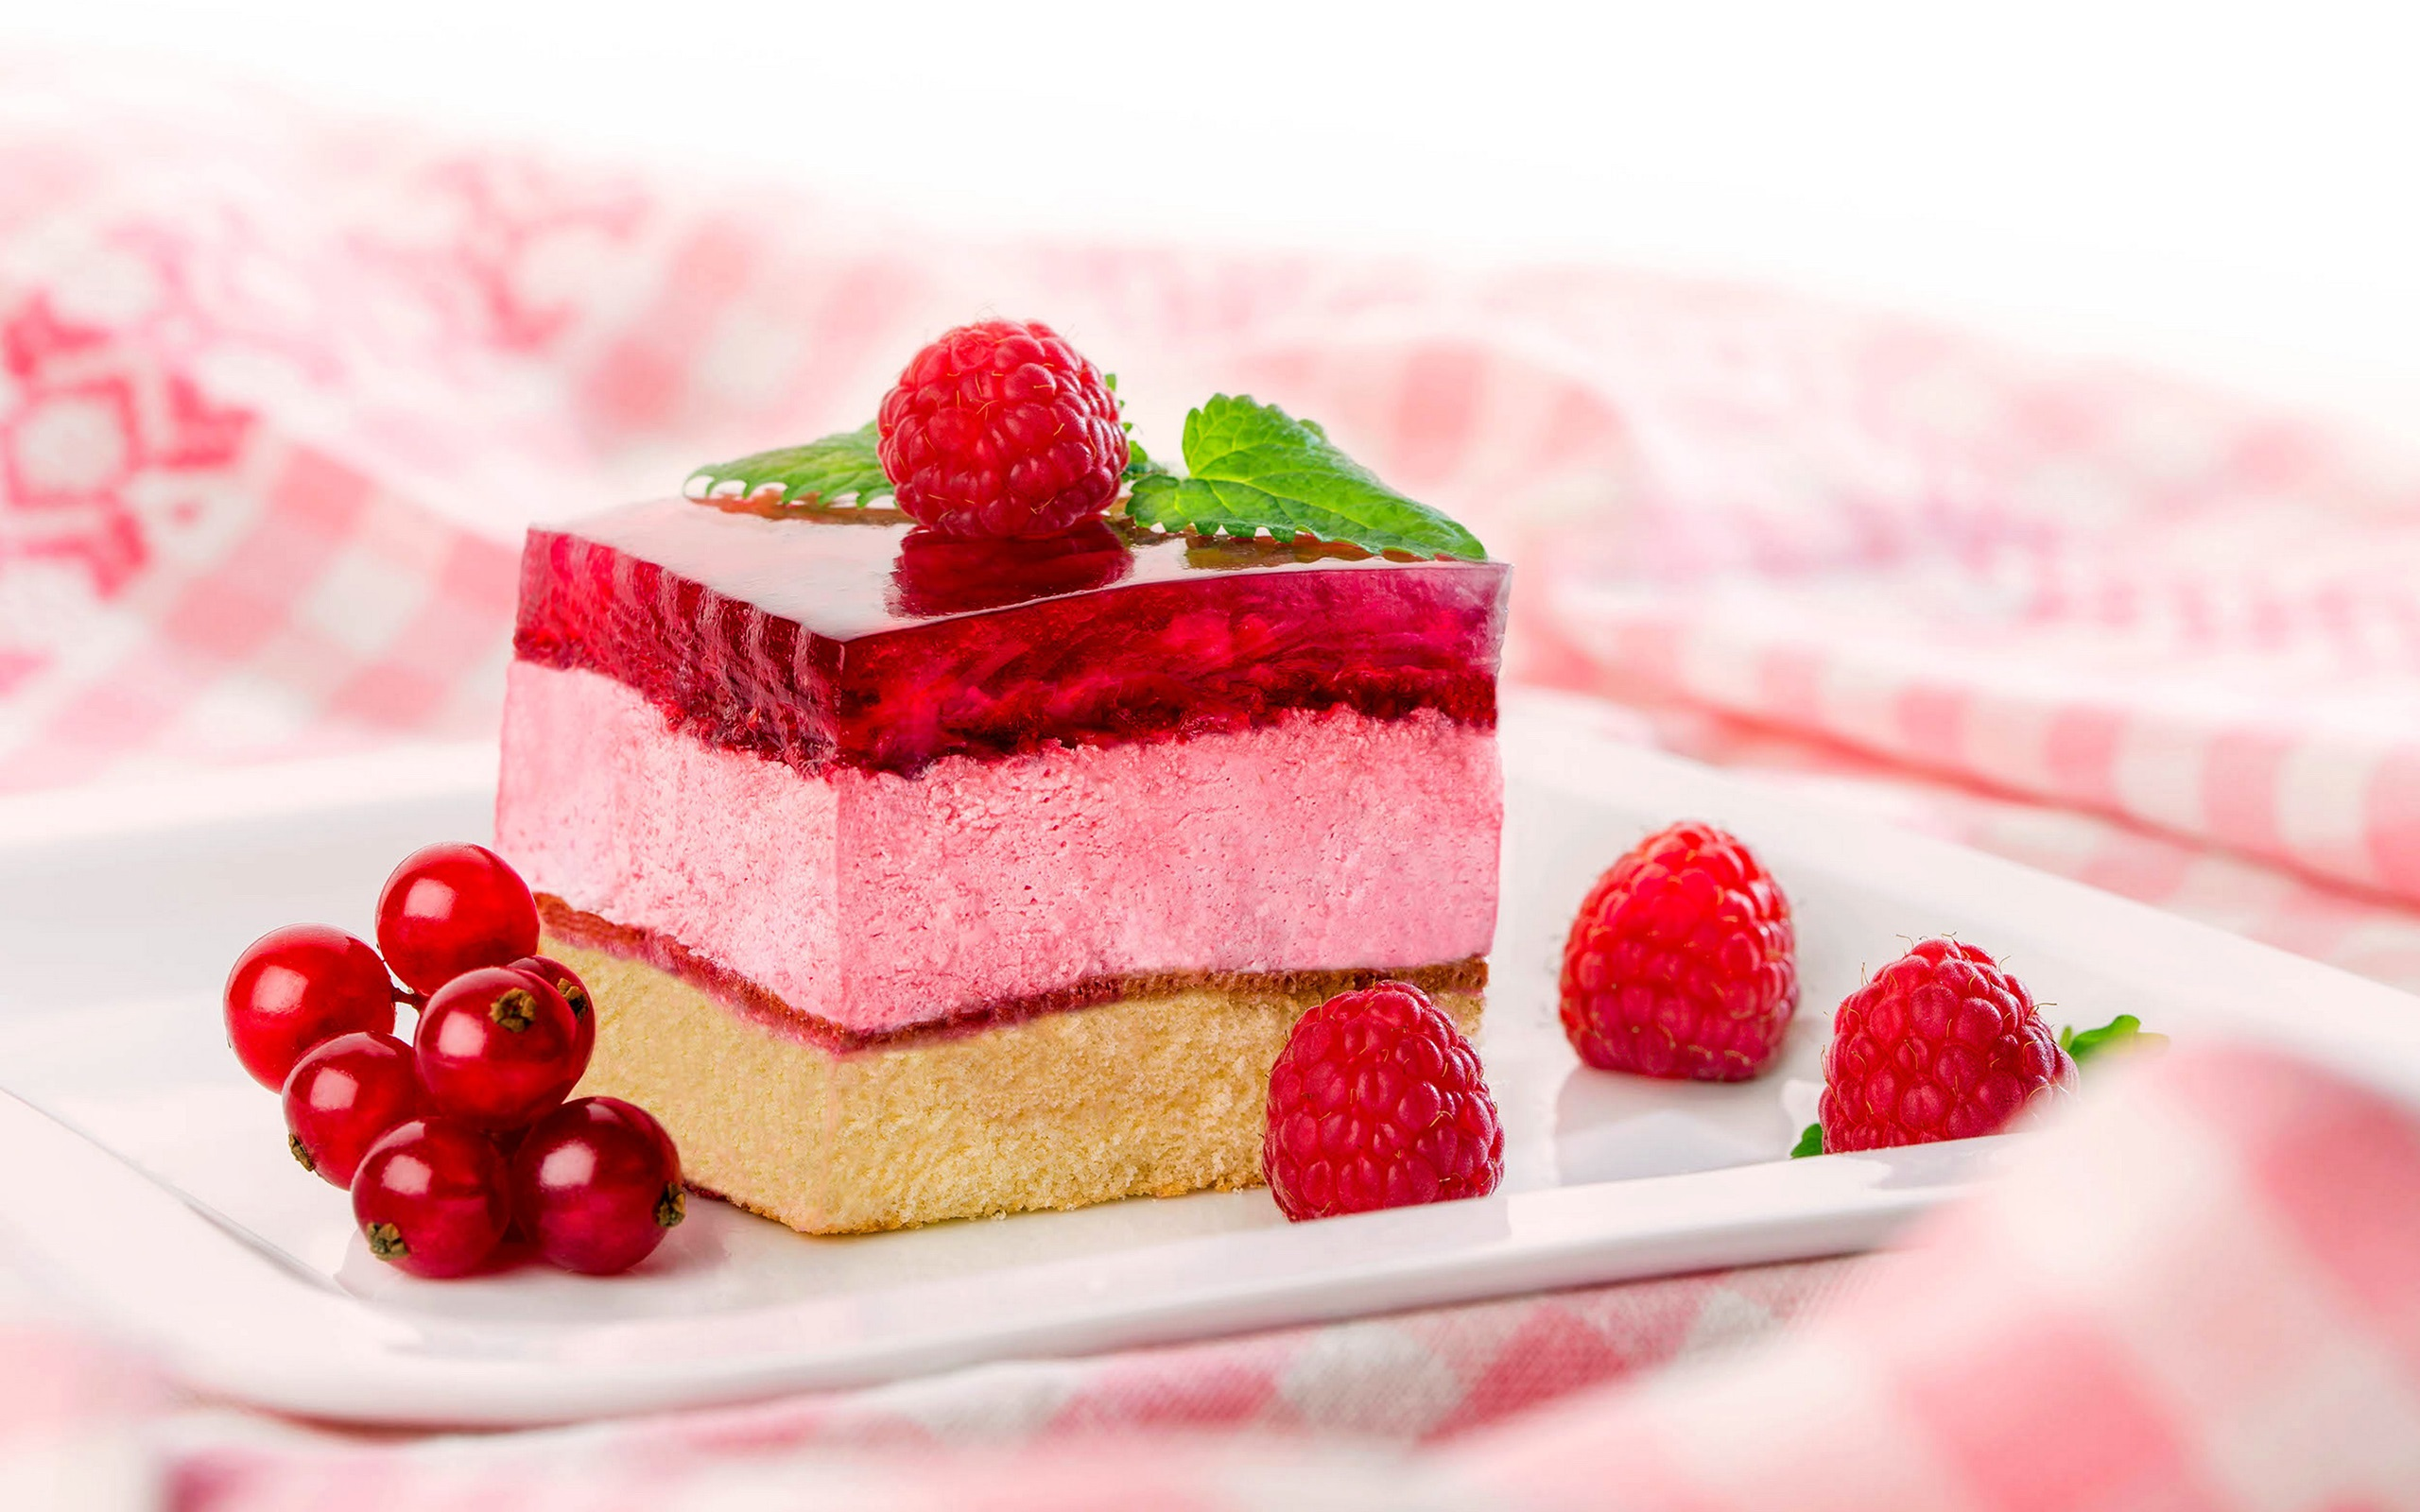 Wallpaper Dessert Cake Berries 2560x1600 Hd Picture Image